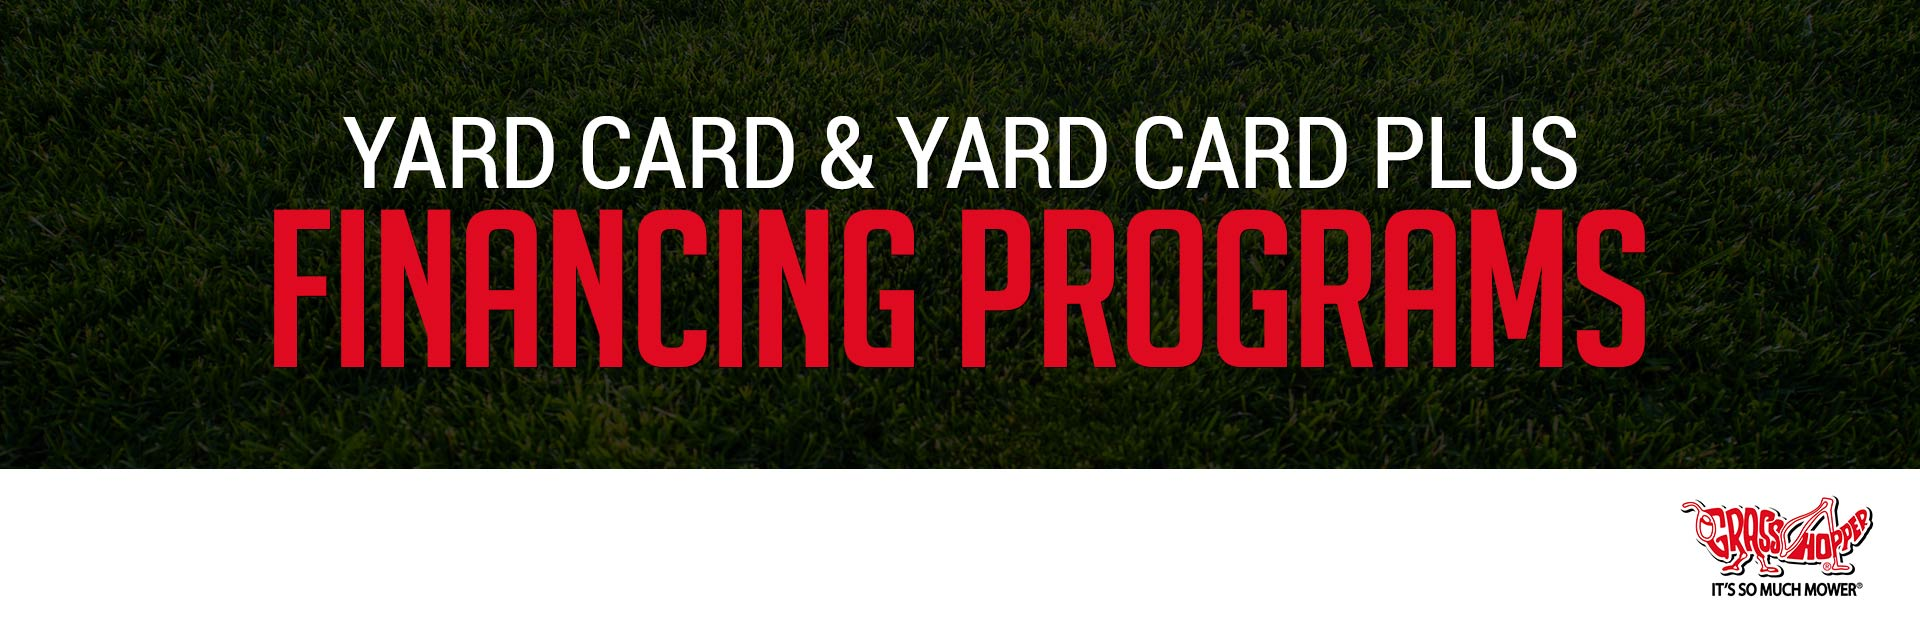 Grasshopper: Yard Card and Yard Card Plus Financing Programs